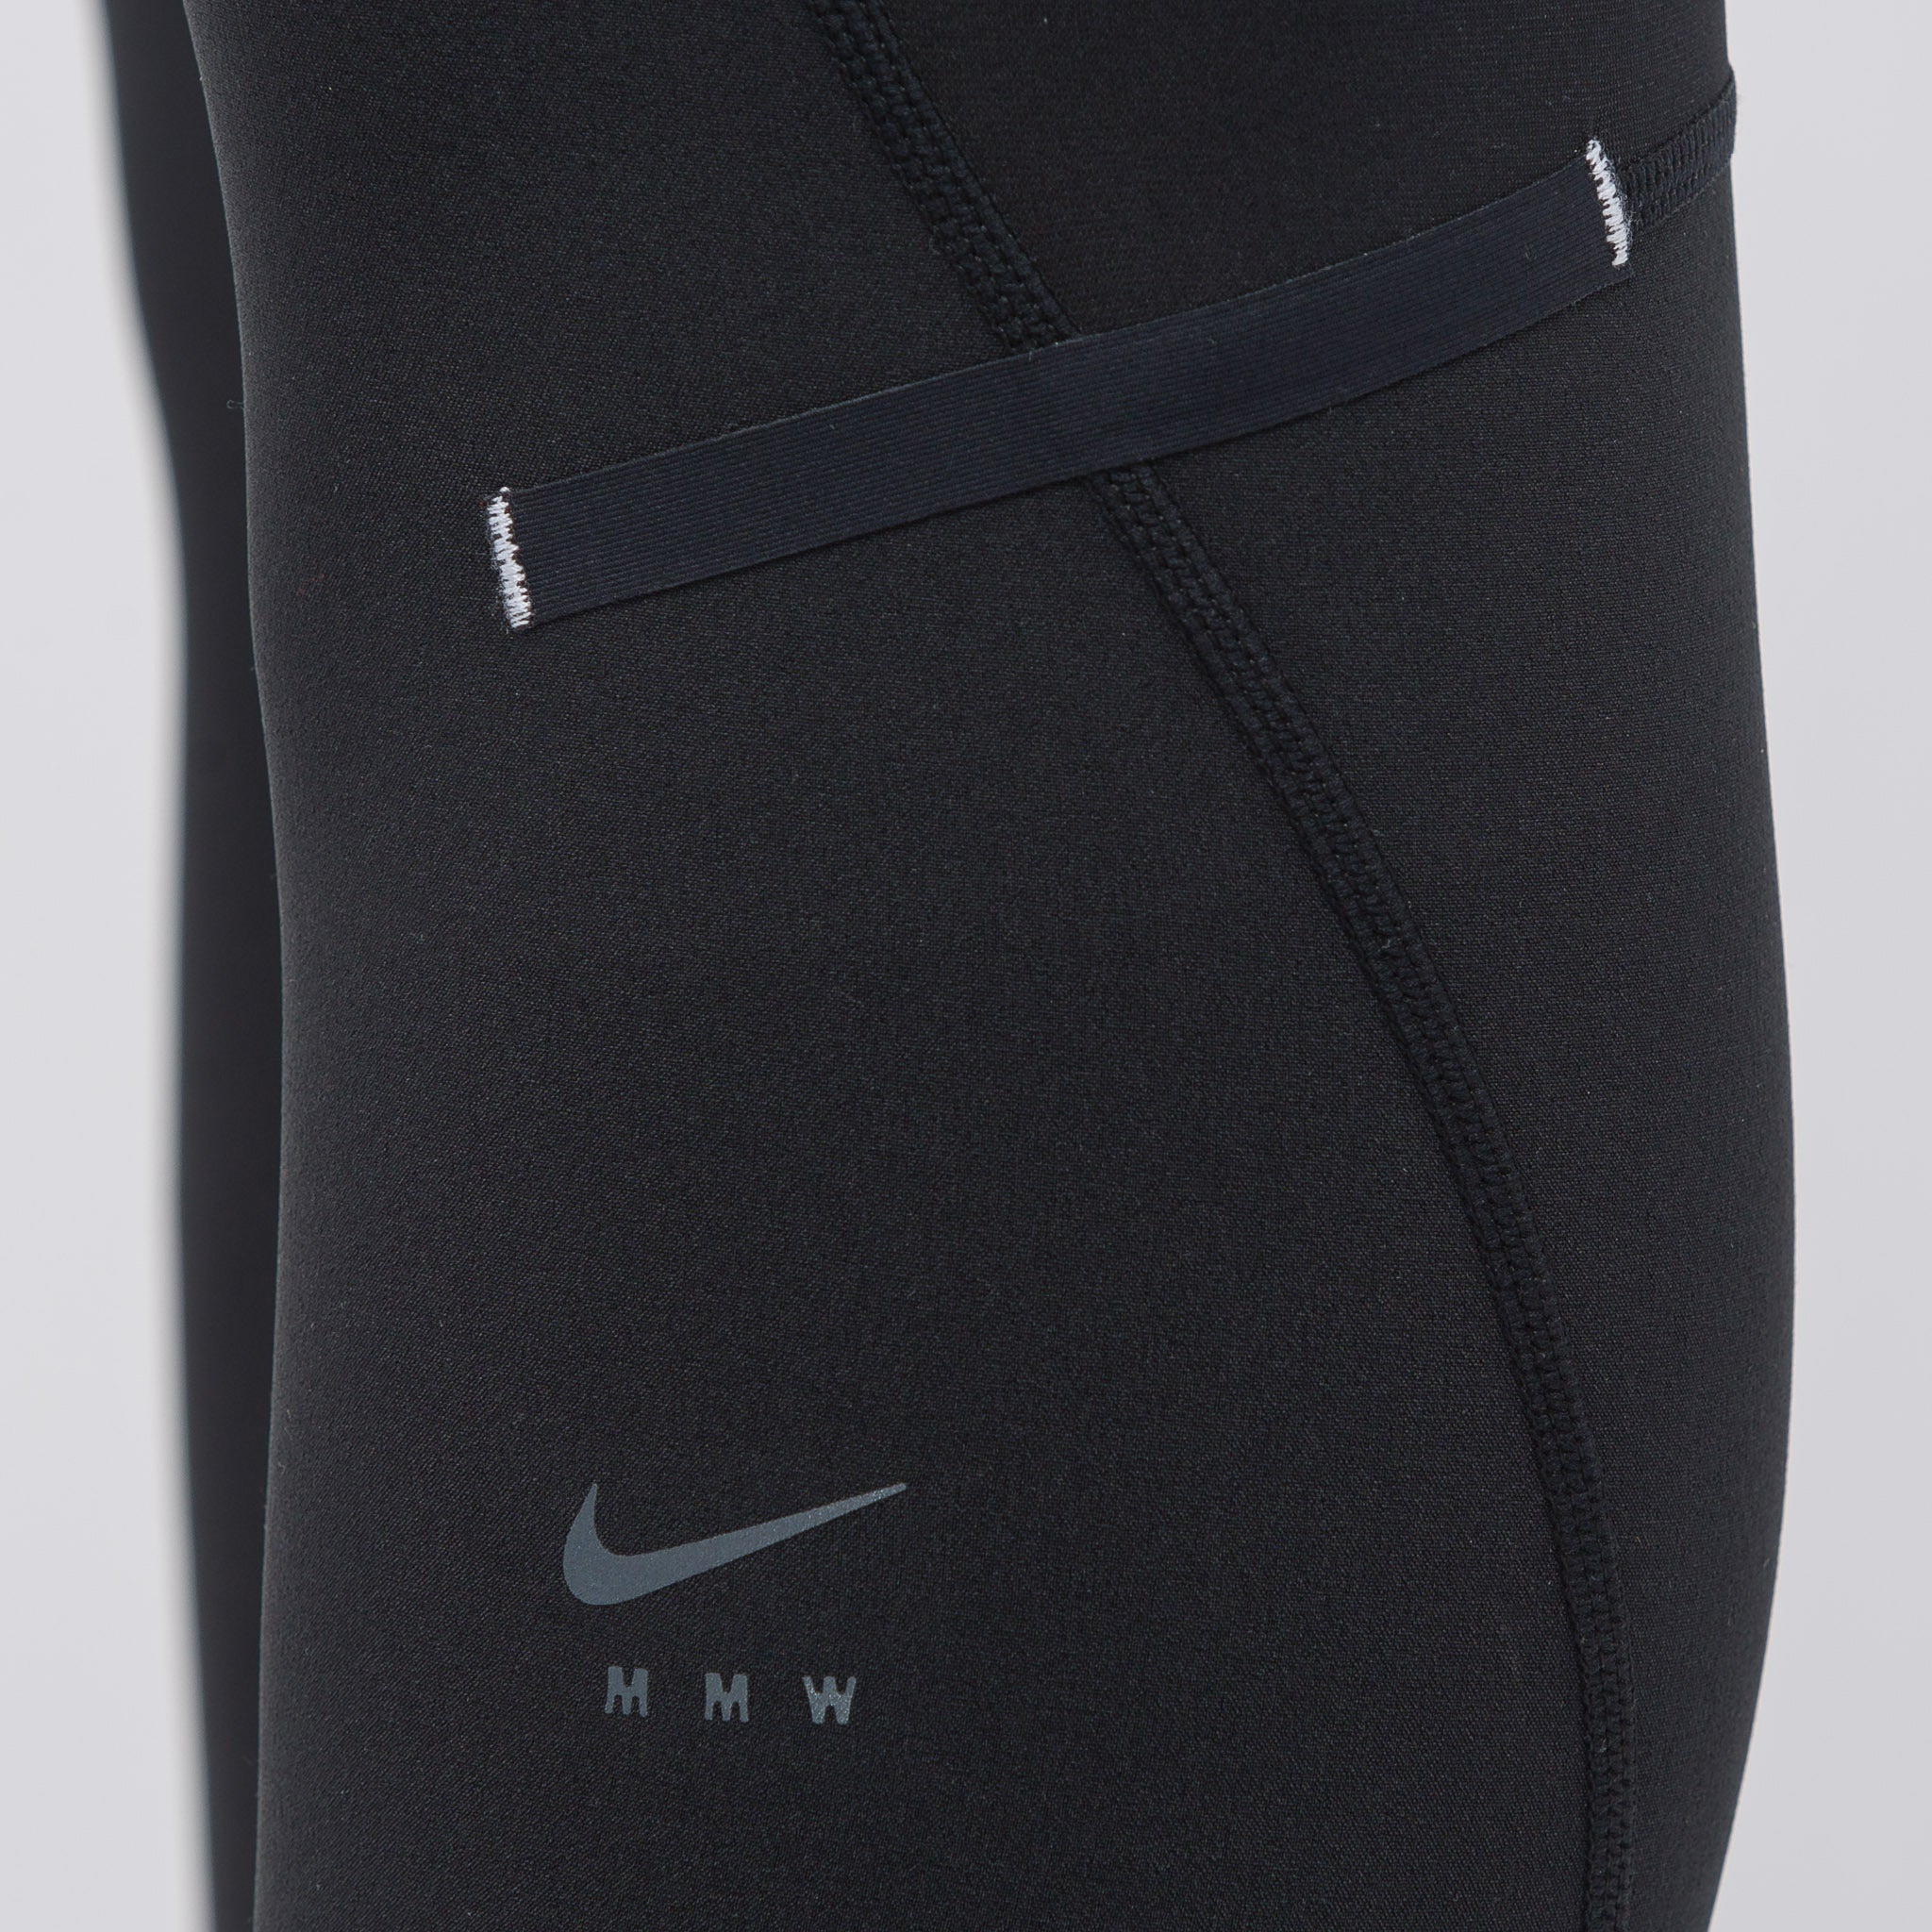 x Matthew Williams 2-in-1 HYB Tight in Black